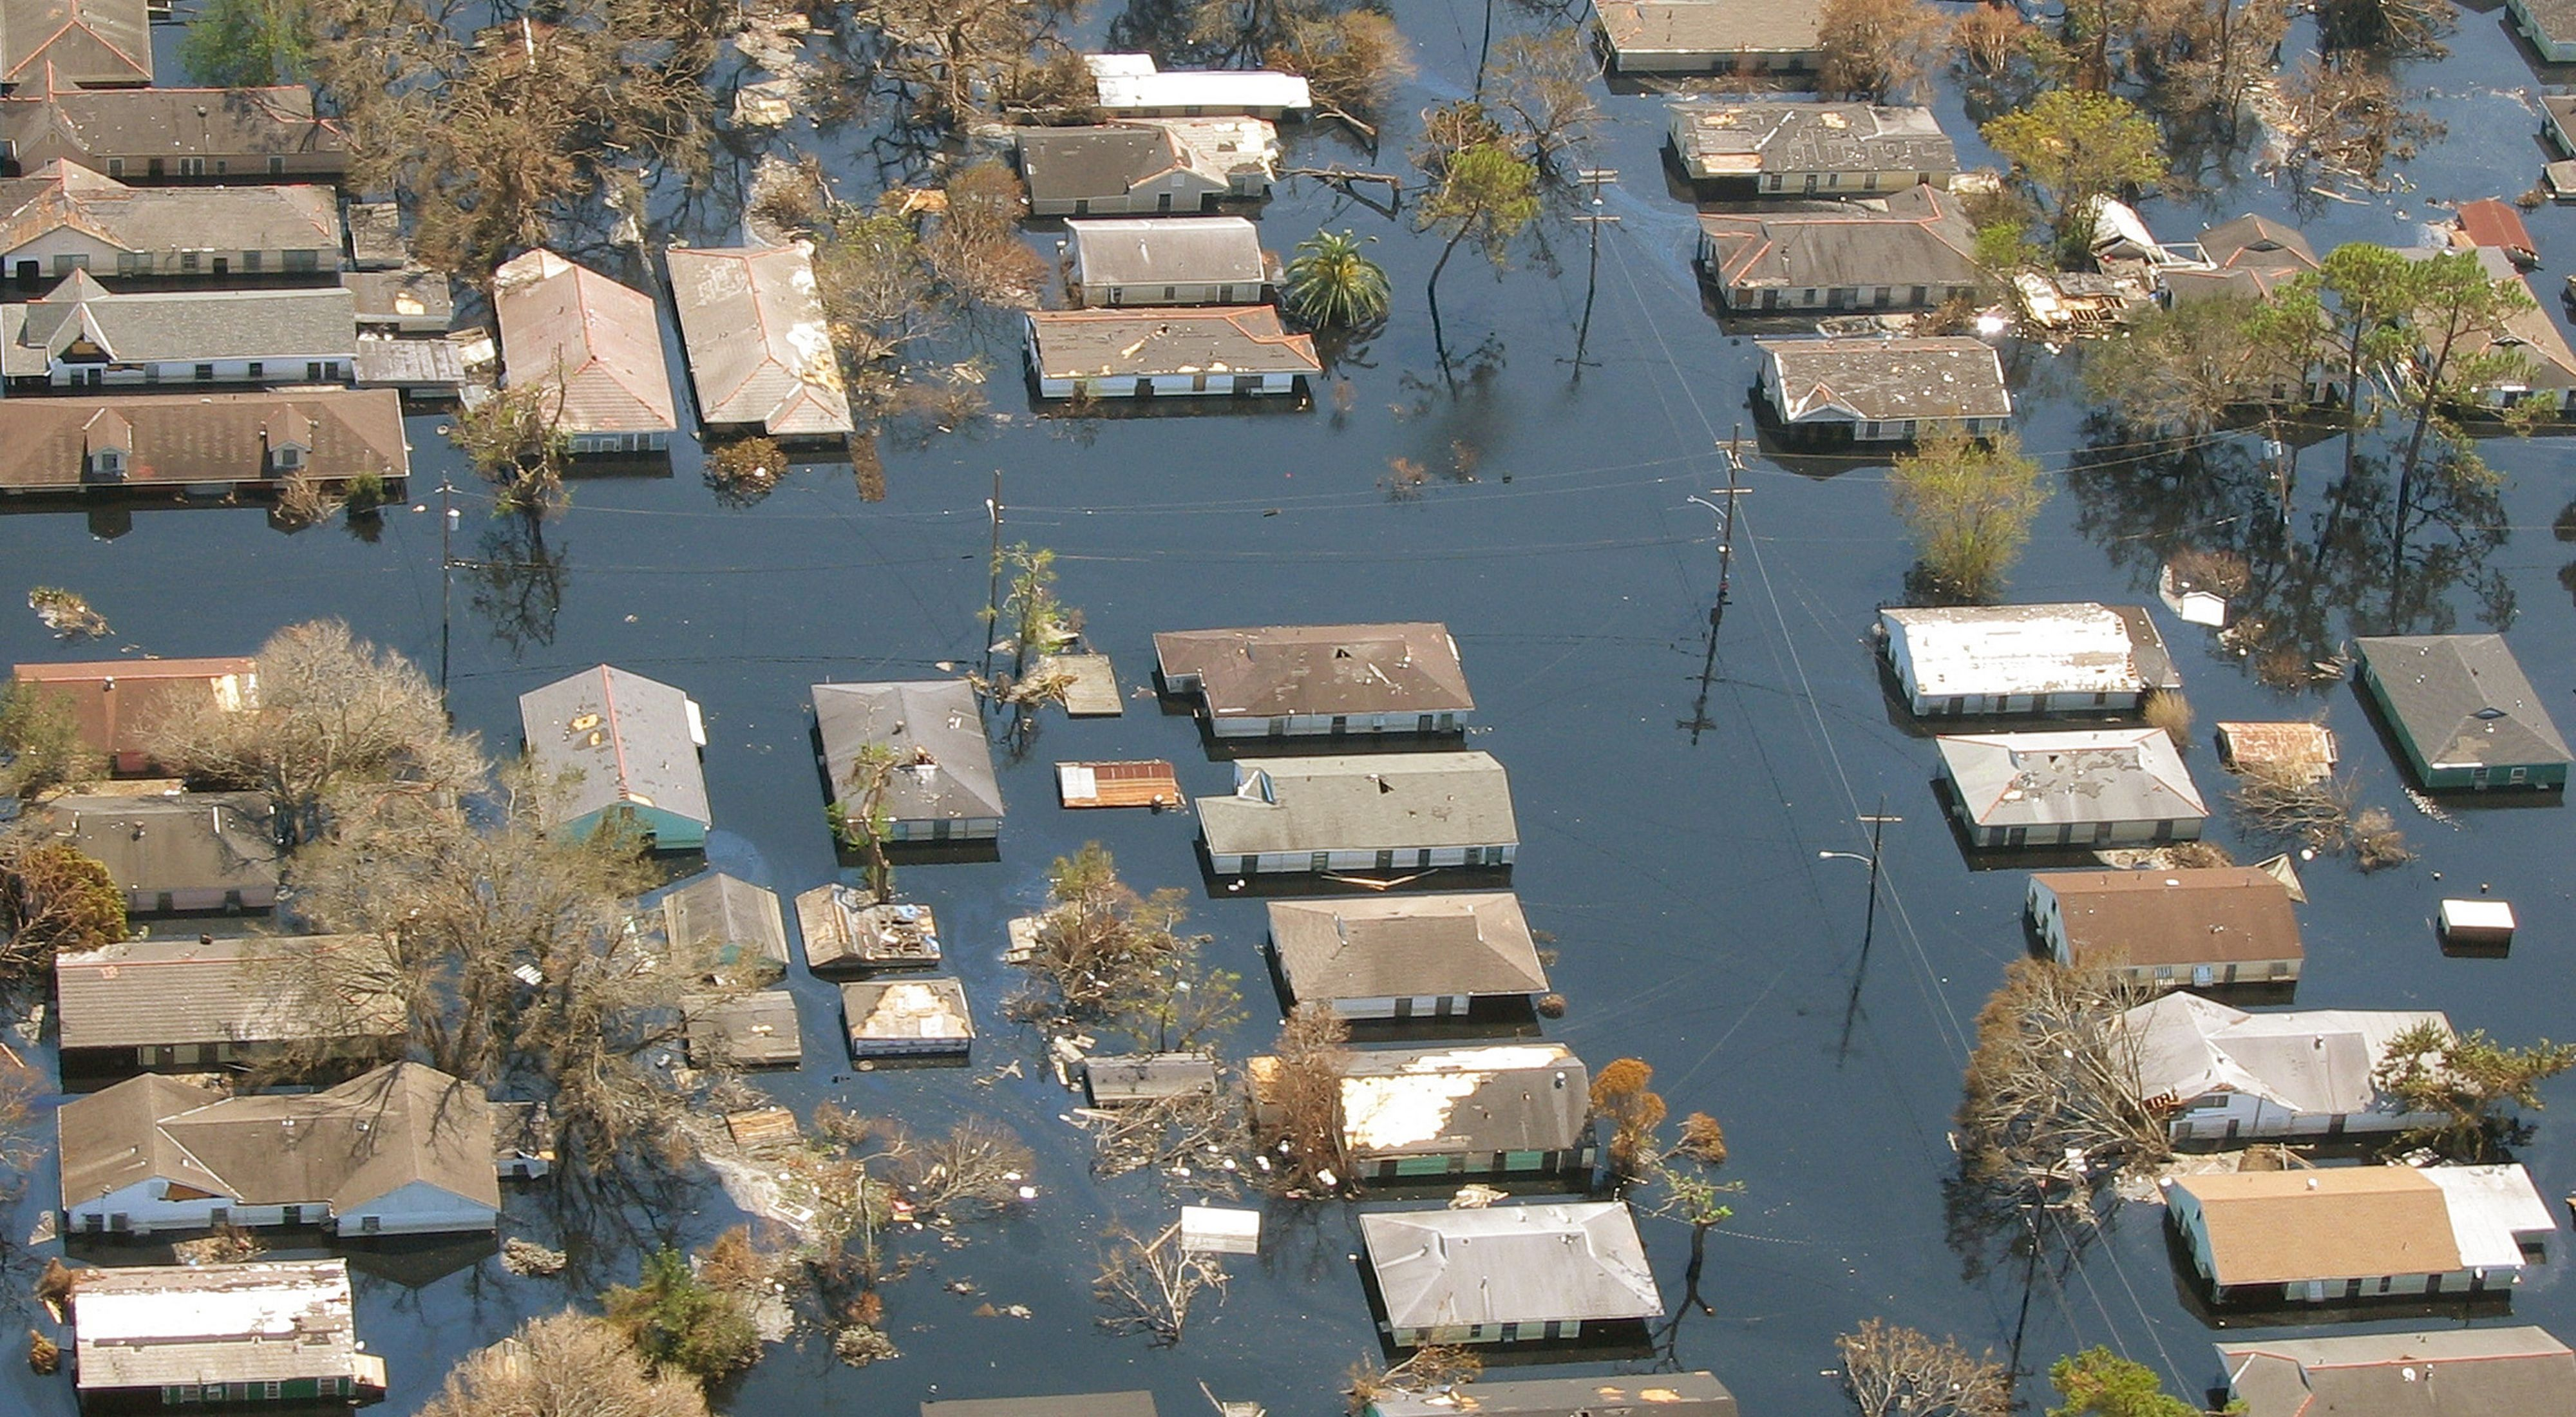 Arial views of flooded homes